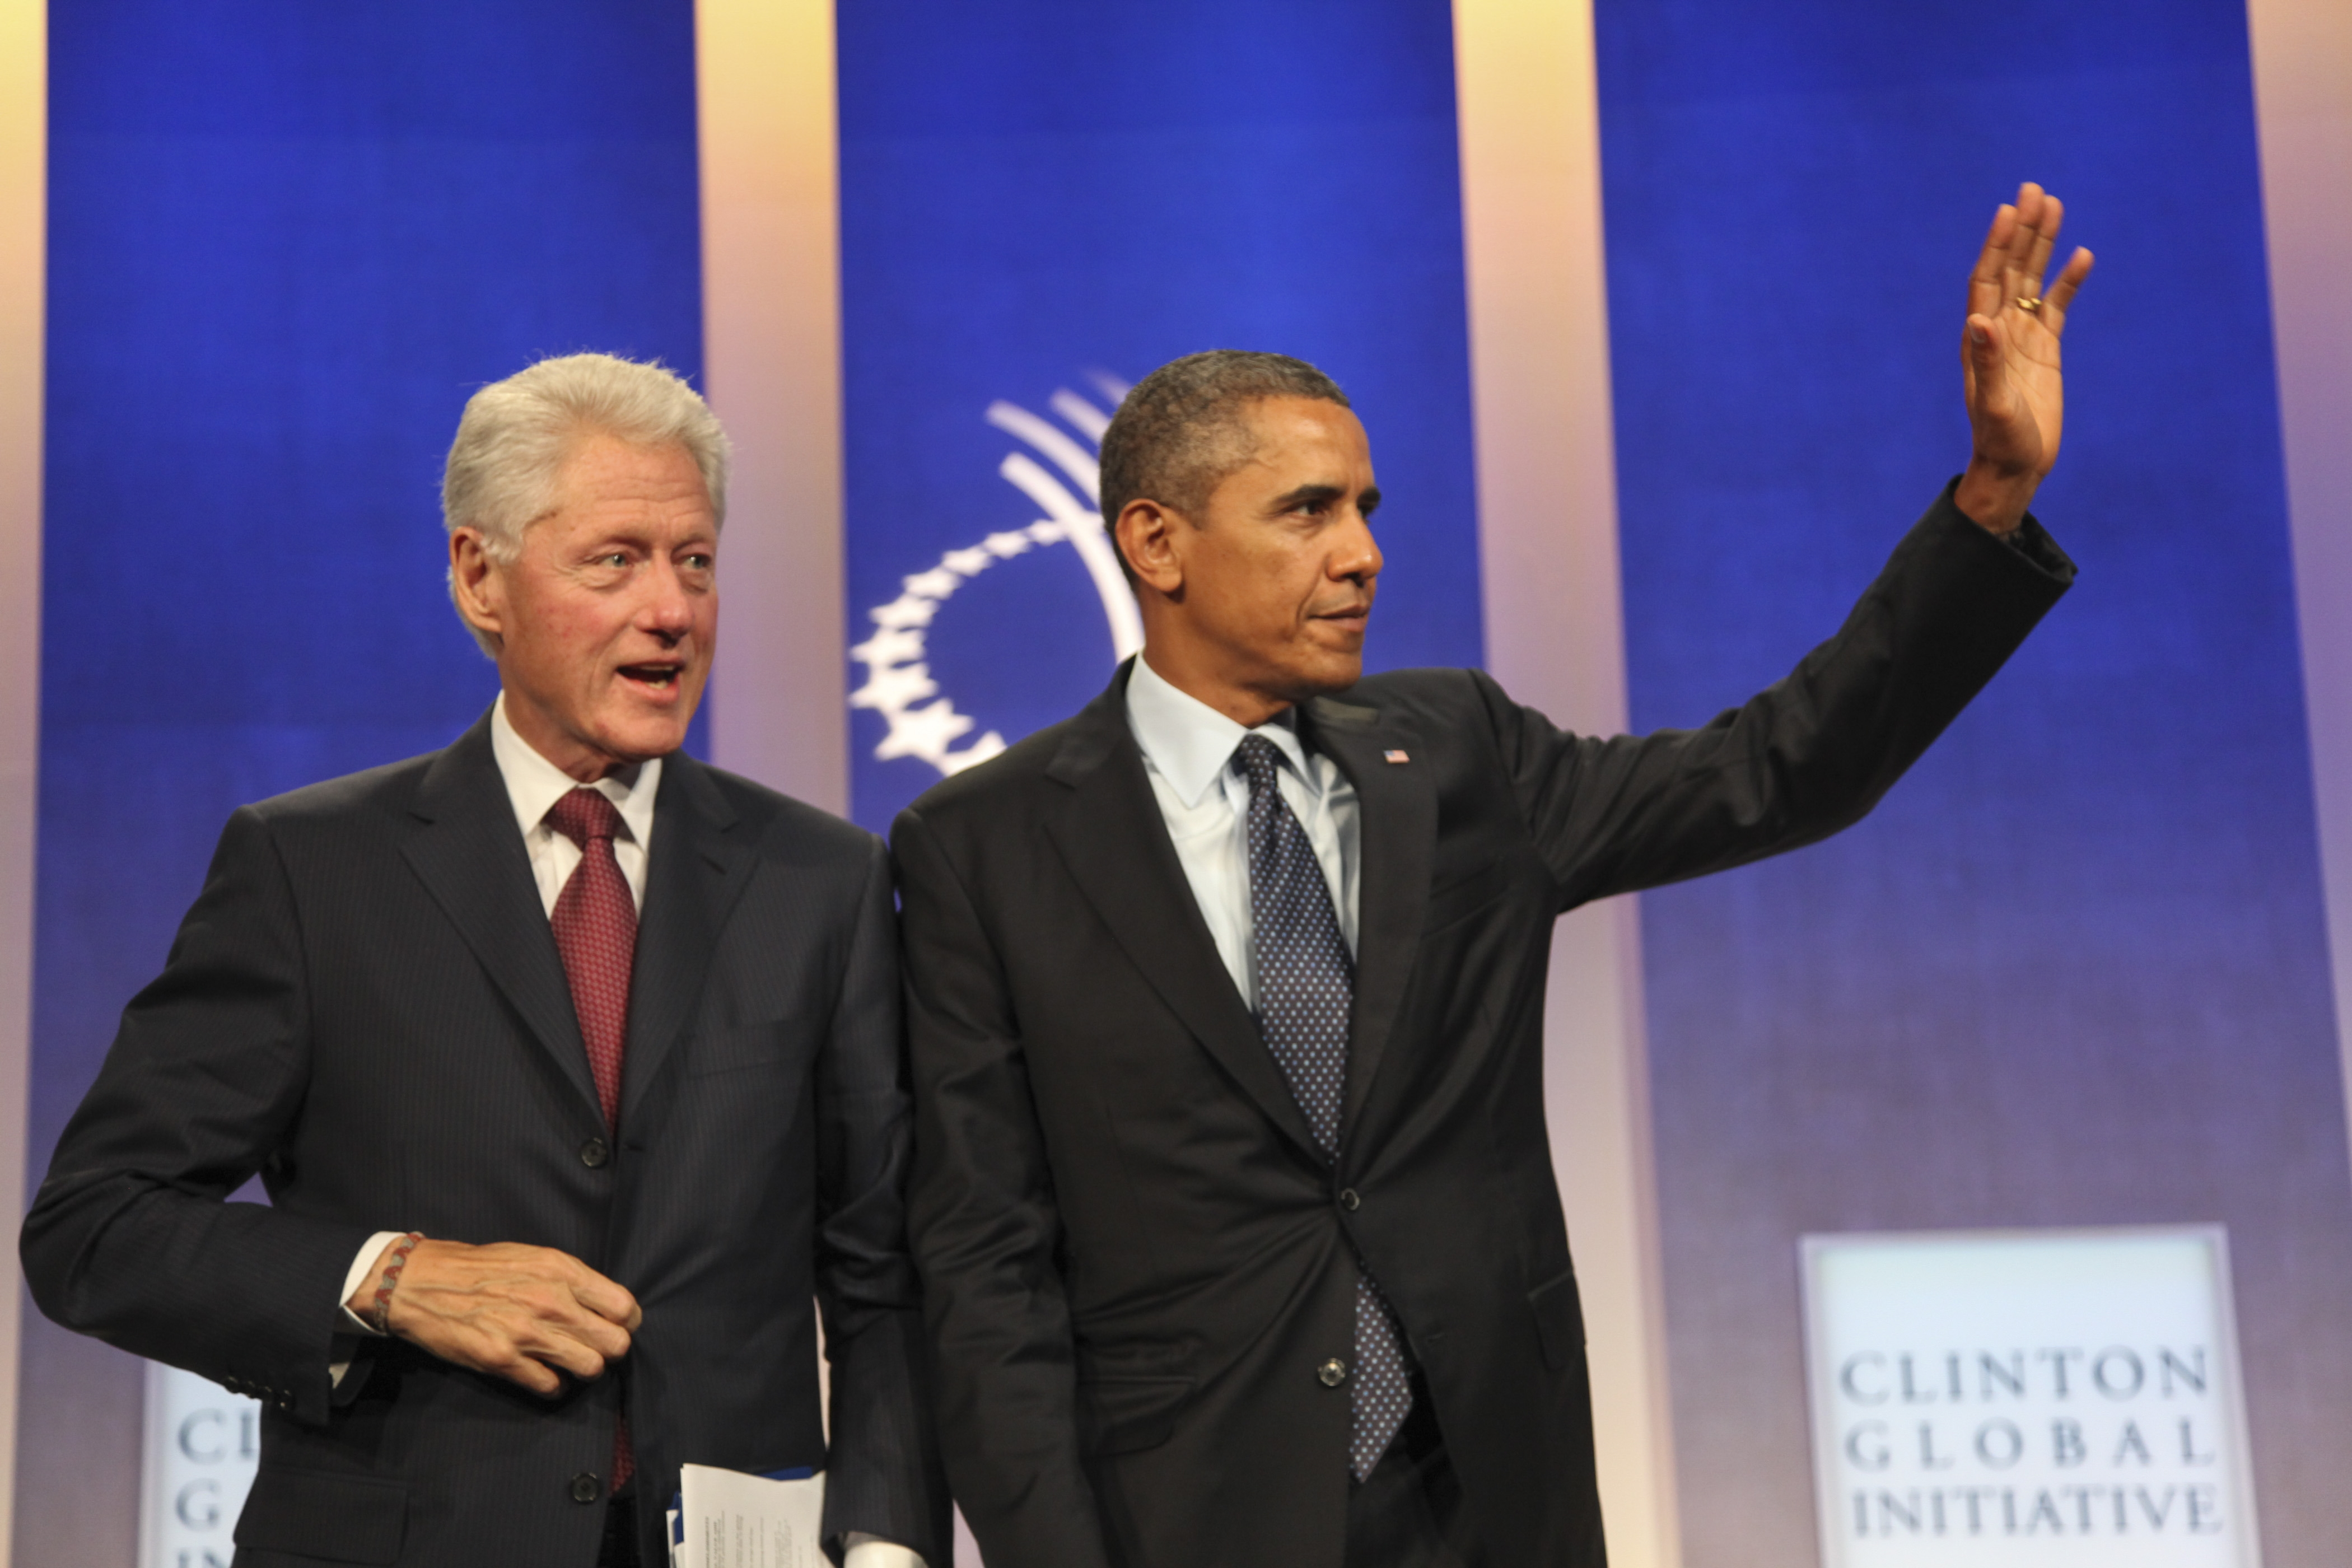 President Obama acknowledges audience as he and former President Bill Clinton go onstage to speak about health care law at meeting of Clinton Global Initiative in New York City.